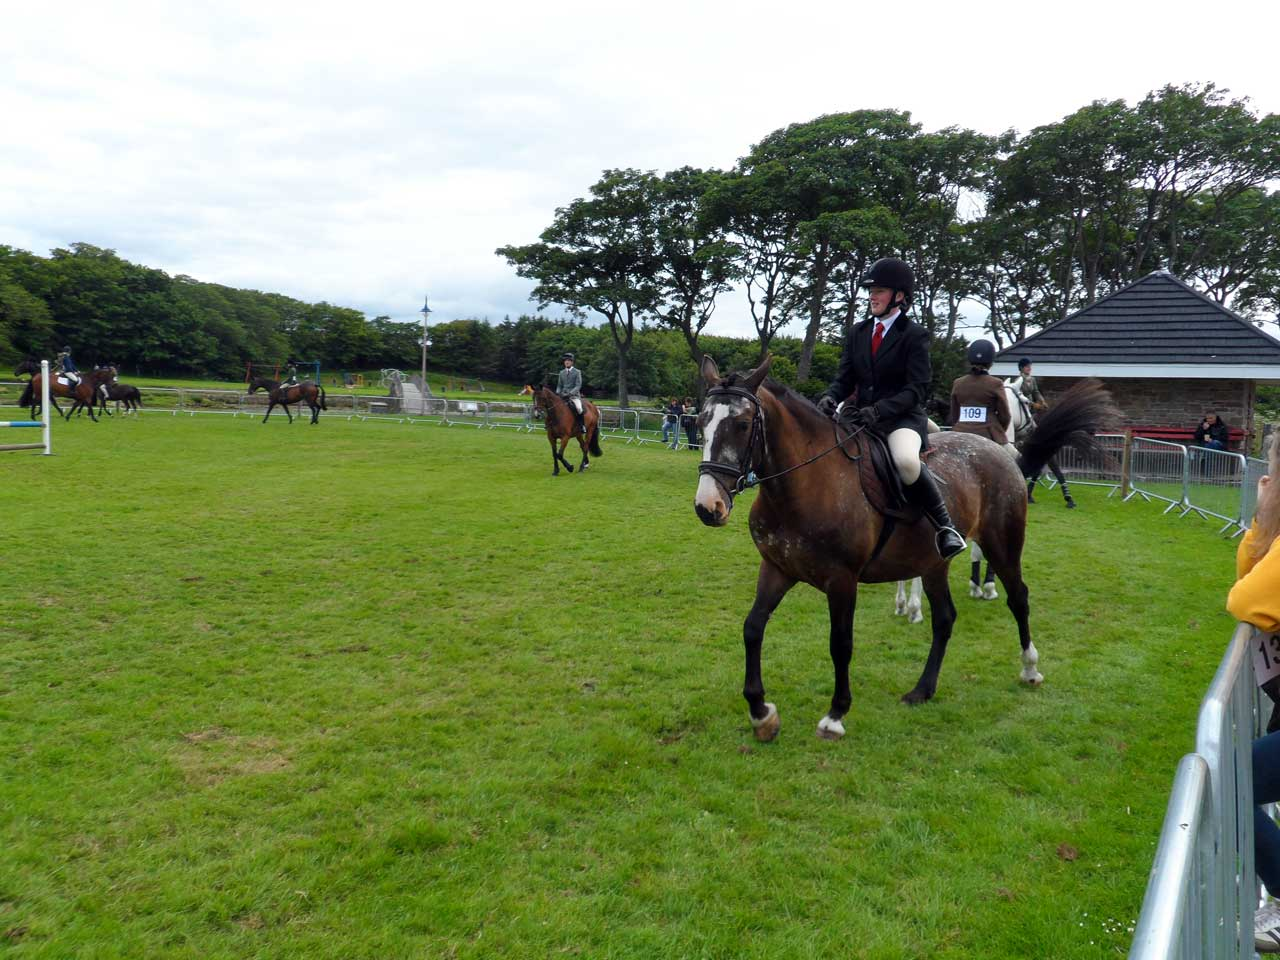 Photo: Caithness County Show 2017